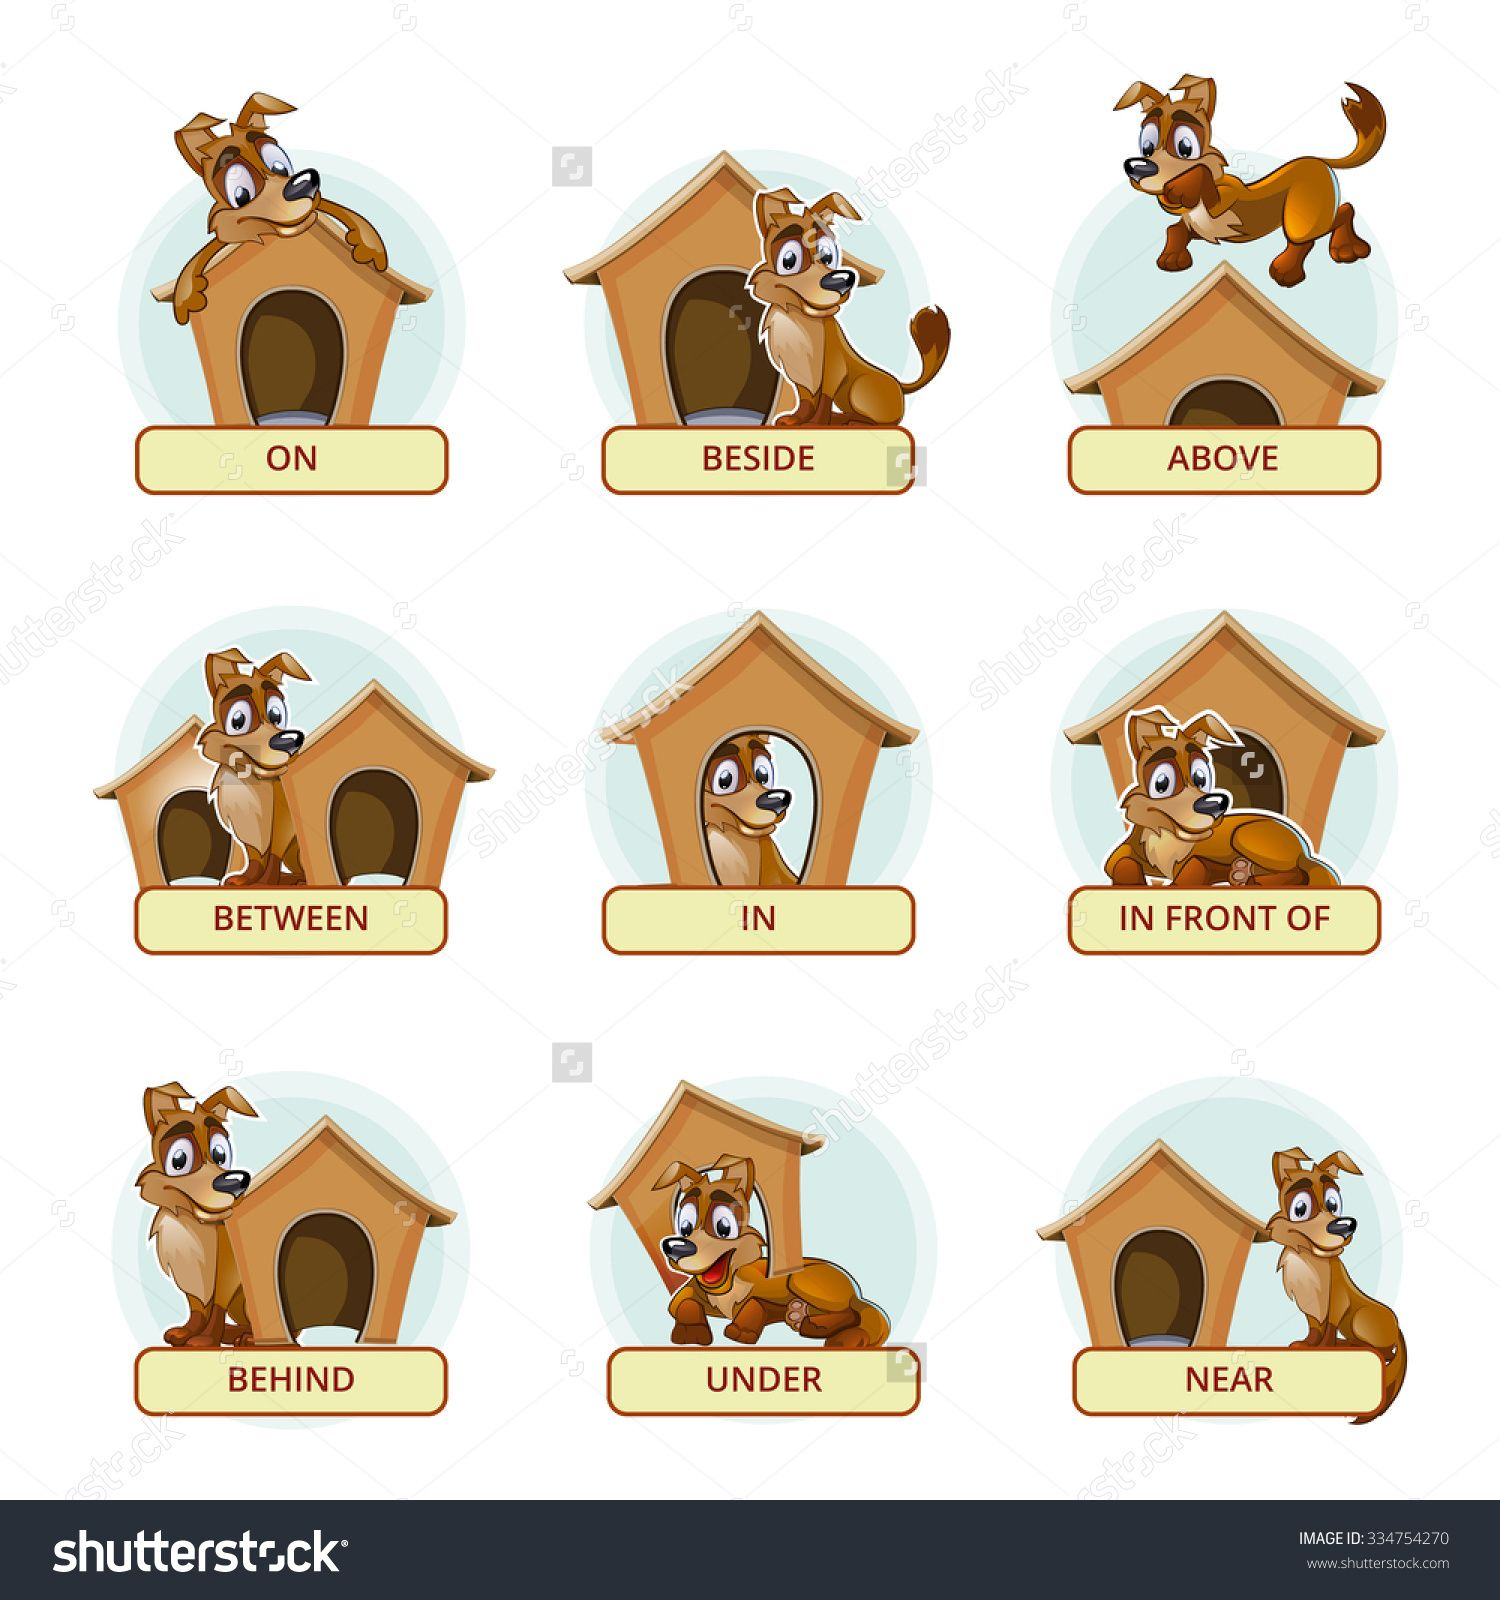 Stock Vector Cartoon Dog In Different Poses To Illustrate